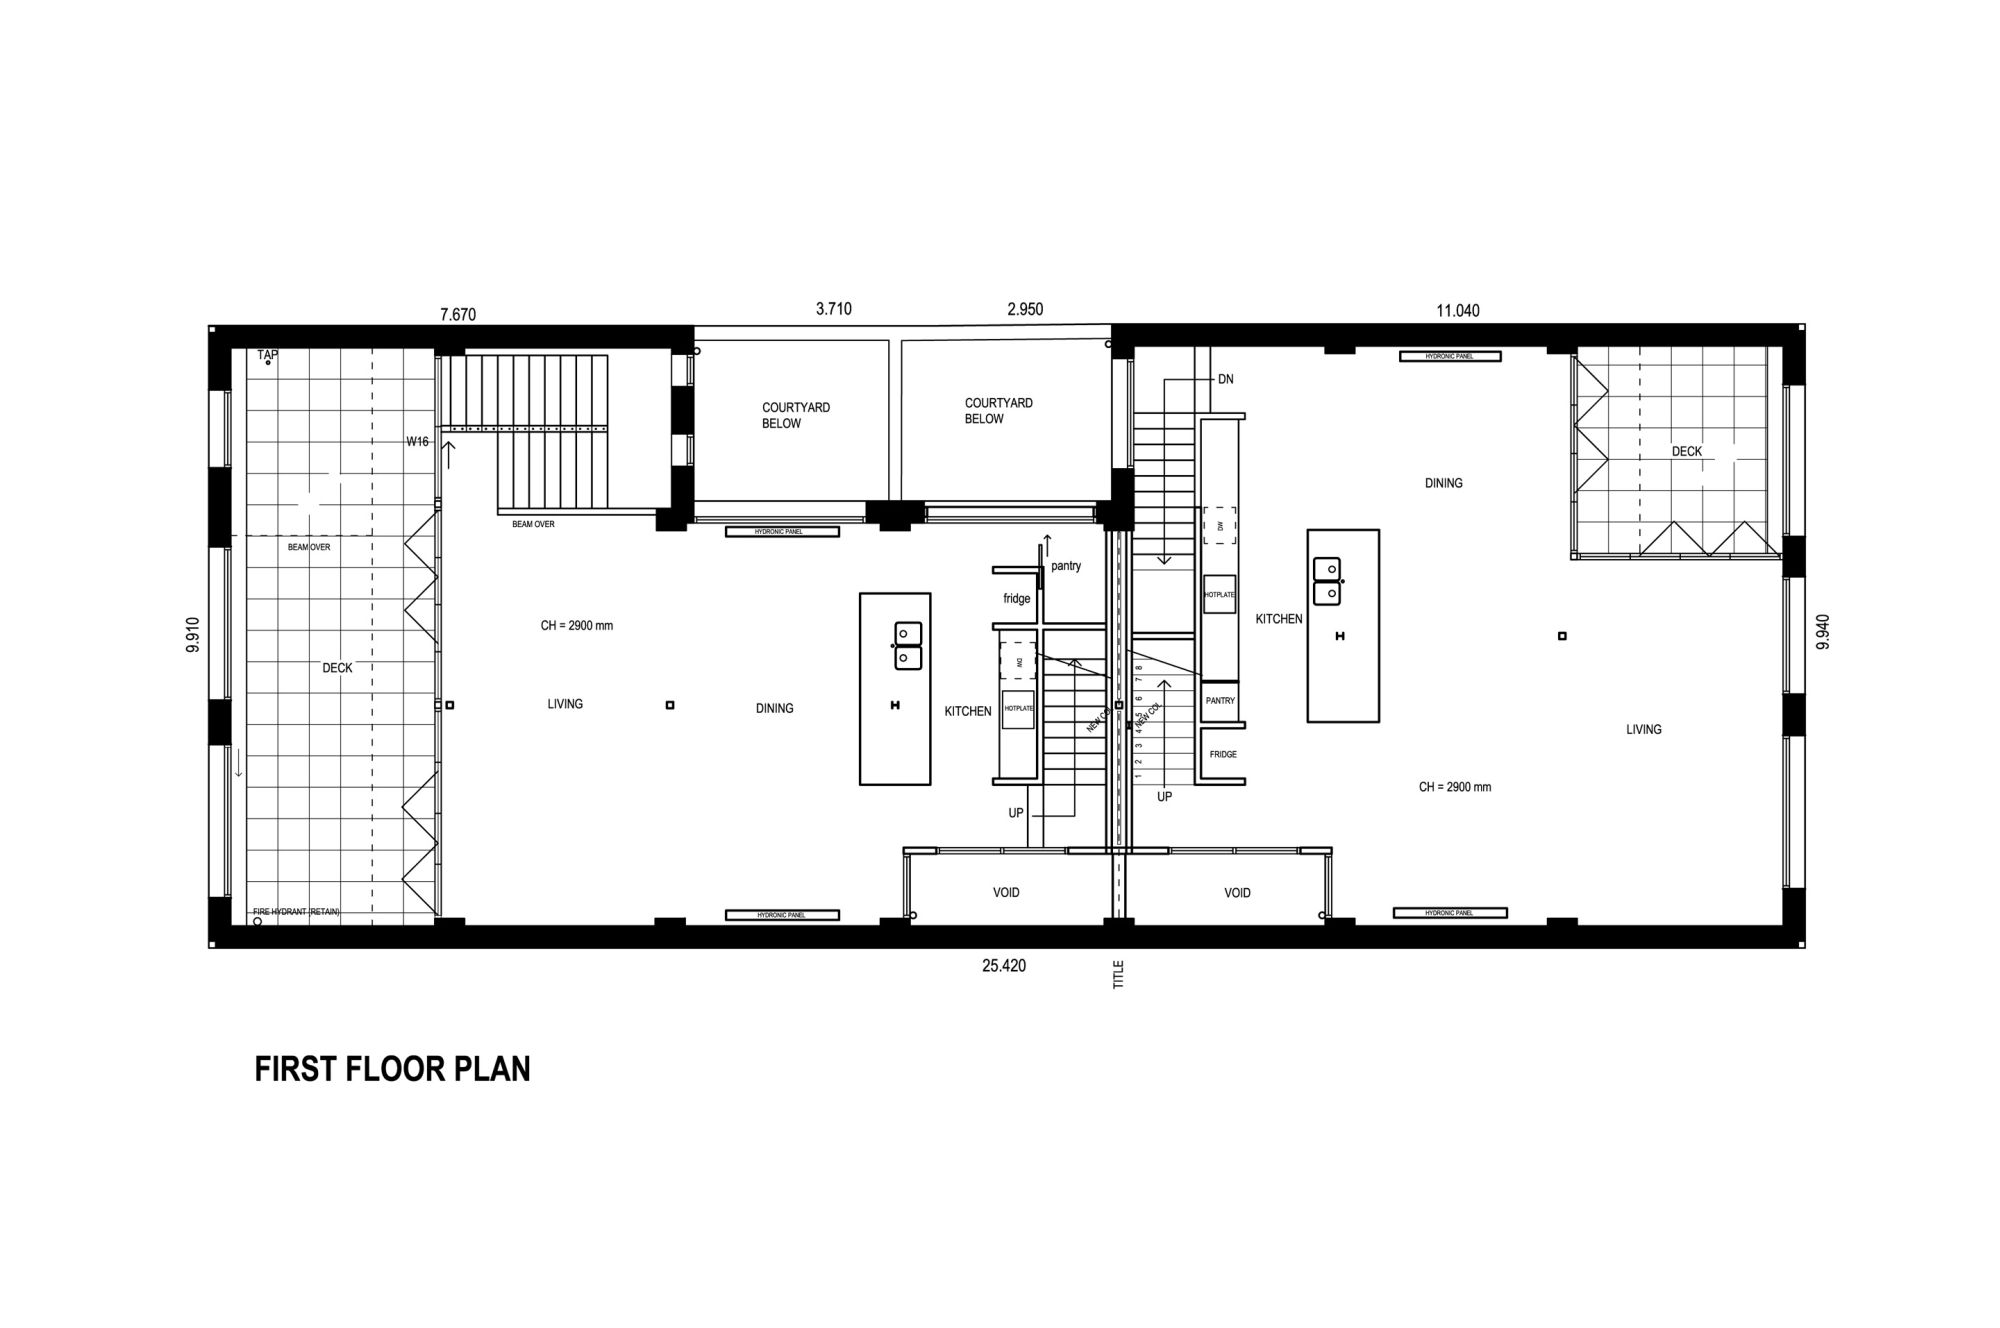 Blueprints moreover Floor Plans In Revit moreover Faq together with Ex les besides The Timmins Bungalow House Plan. on electrical blueprints for house plans